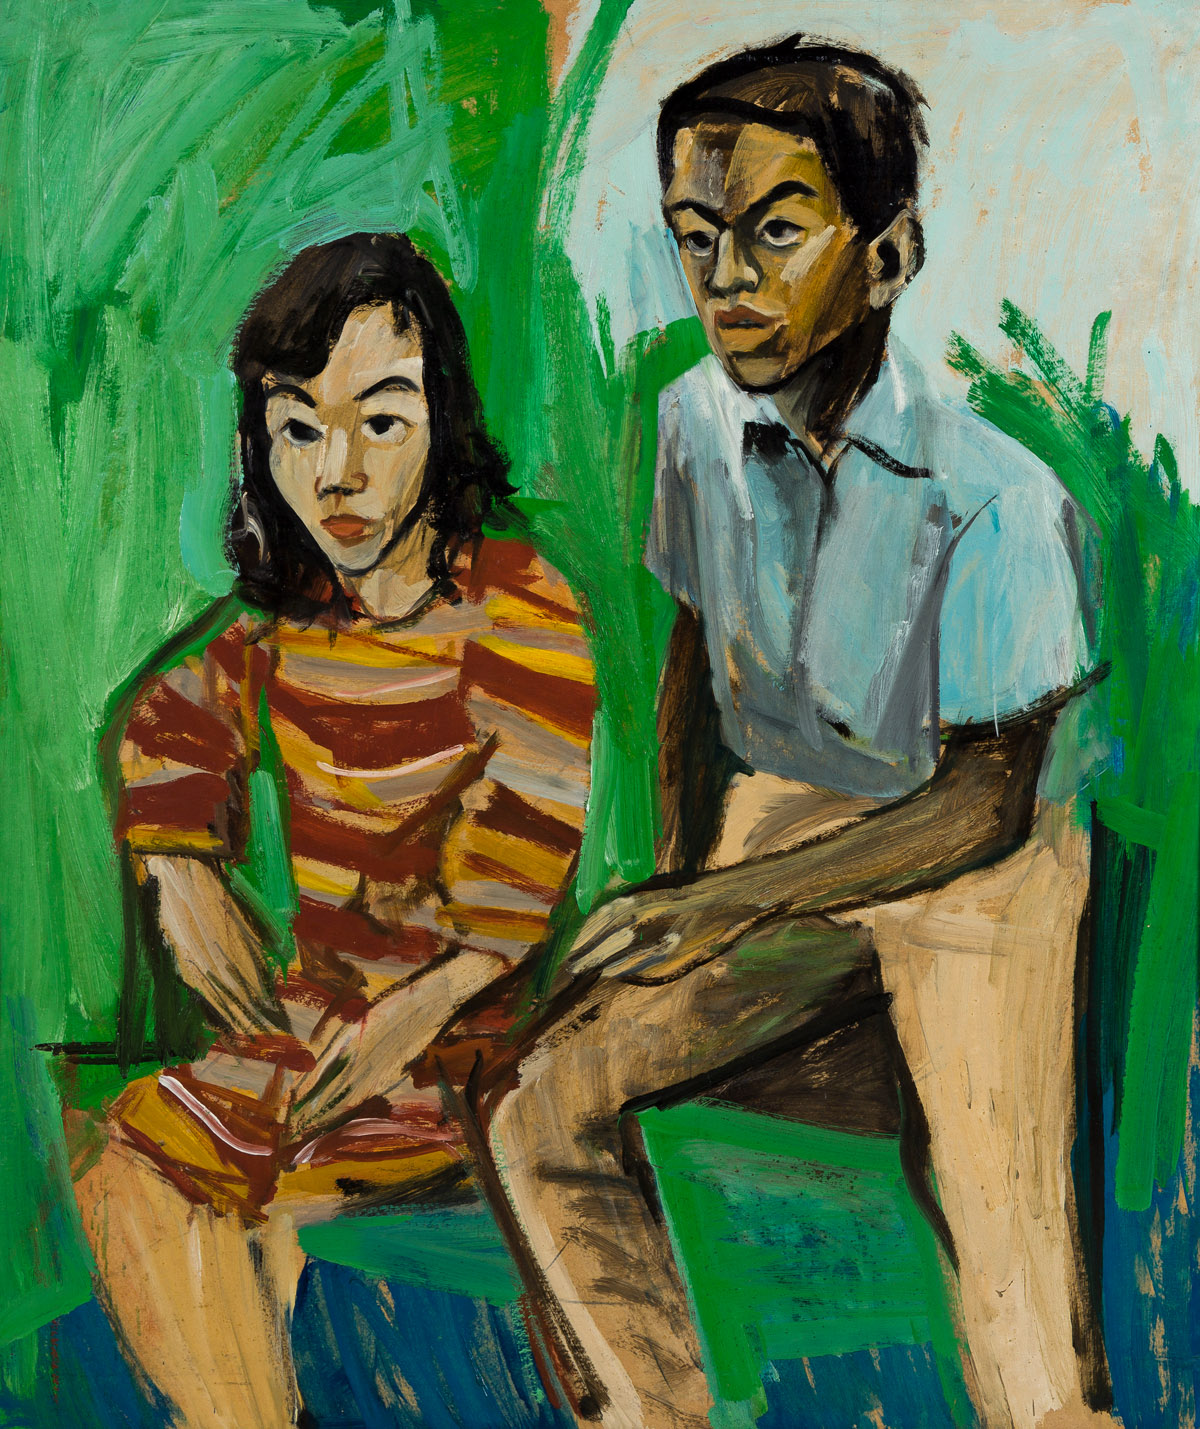 BERNARD HARMON (1935 - 1989) Untitled (Young Man and Woman in a Striped Dress).